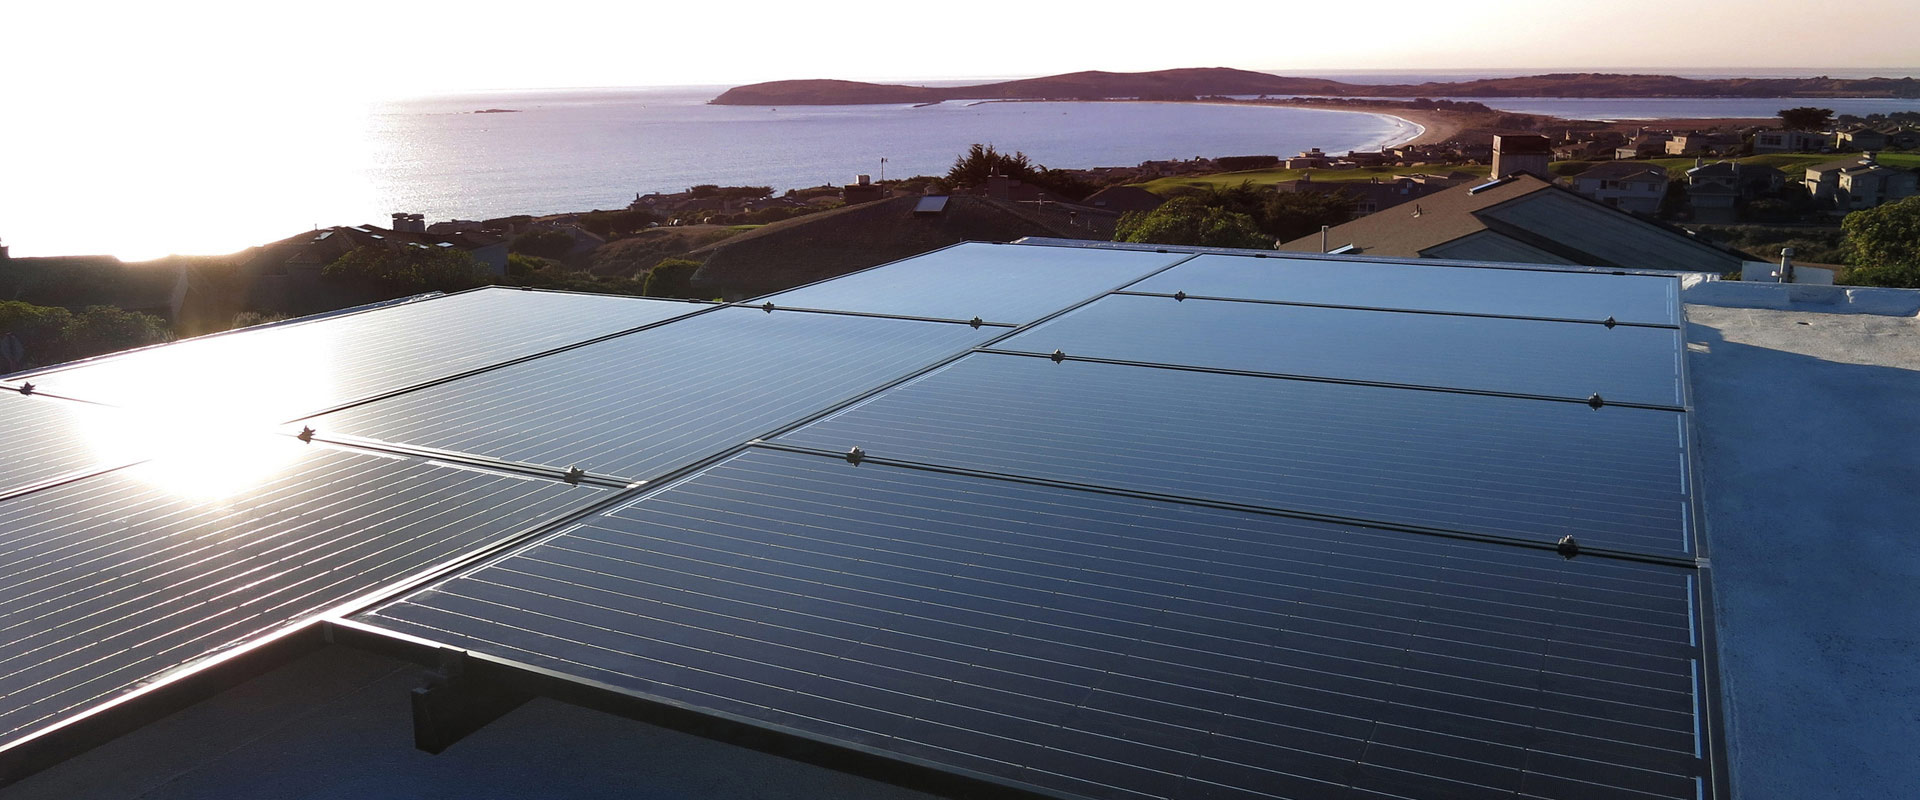 Roof-mounted solar panels in Bodega Bay, CA